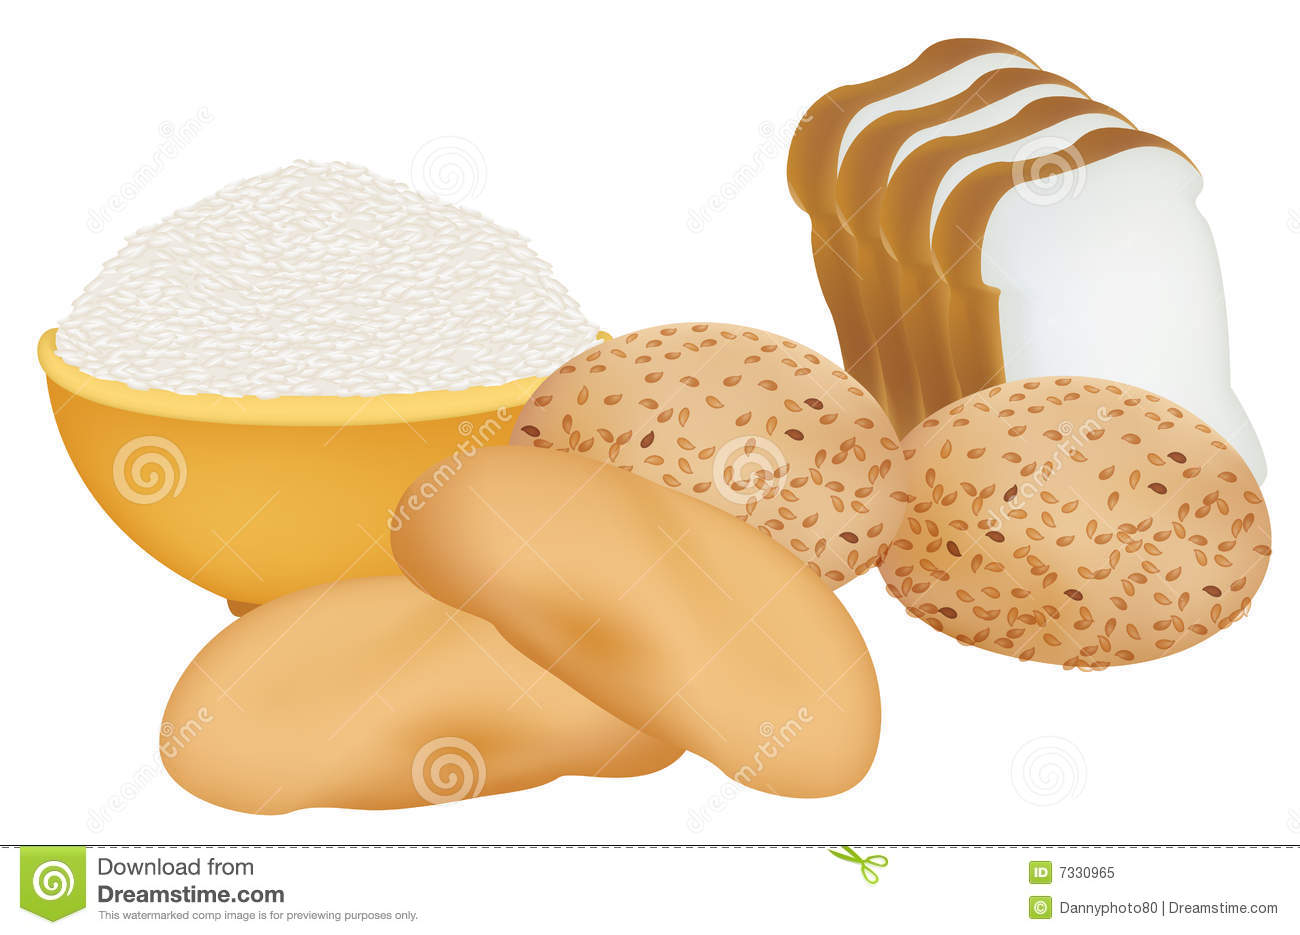 Cereal clipart grain product, Cereal grain product.